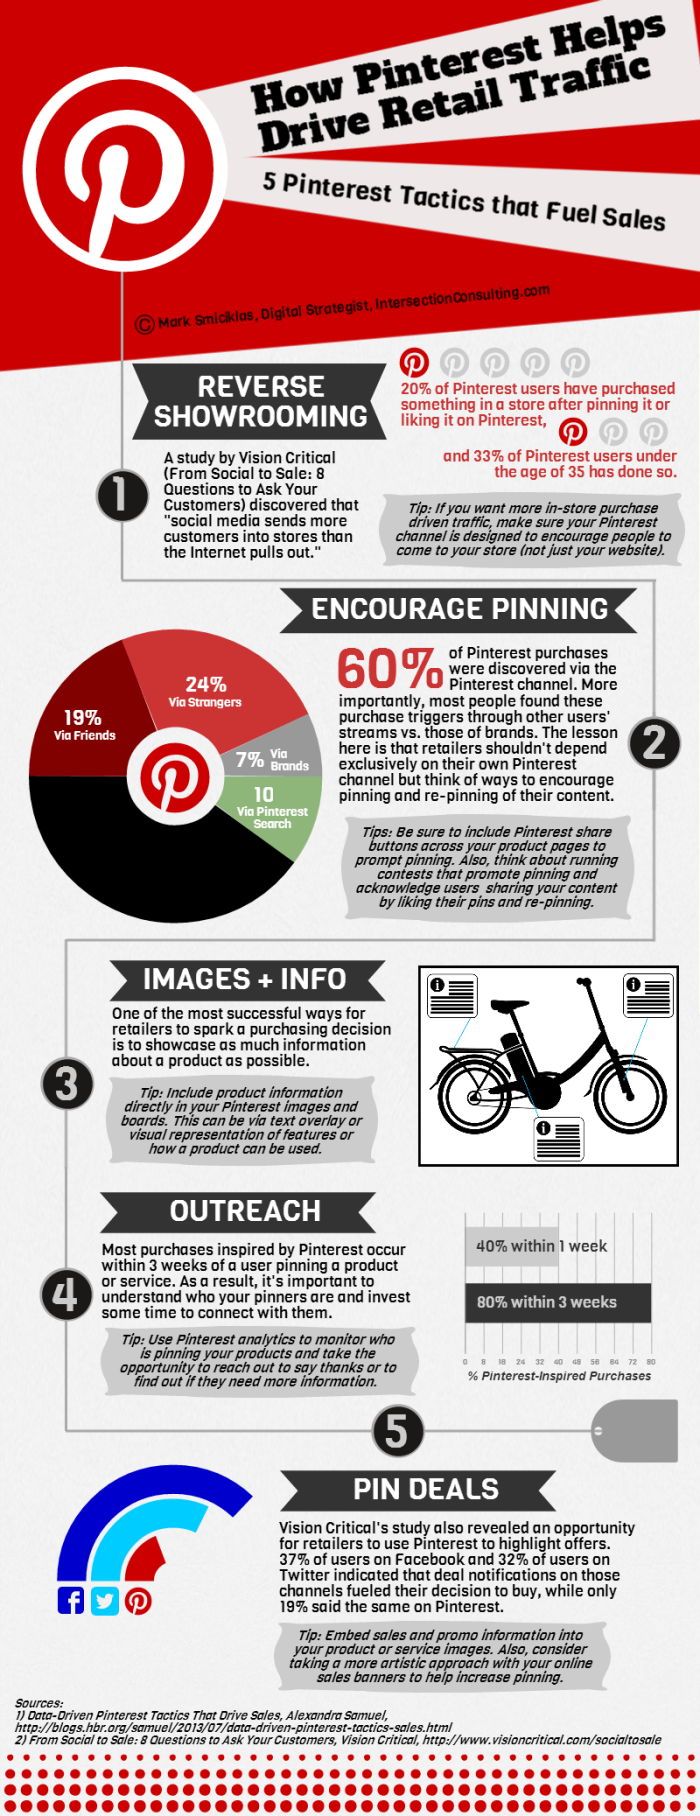 five ways retailers can Drive More sales From Pinterest [infographic], social media guide.